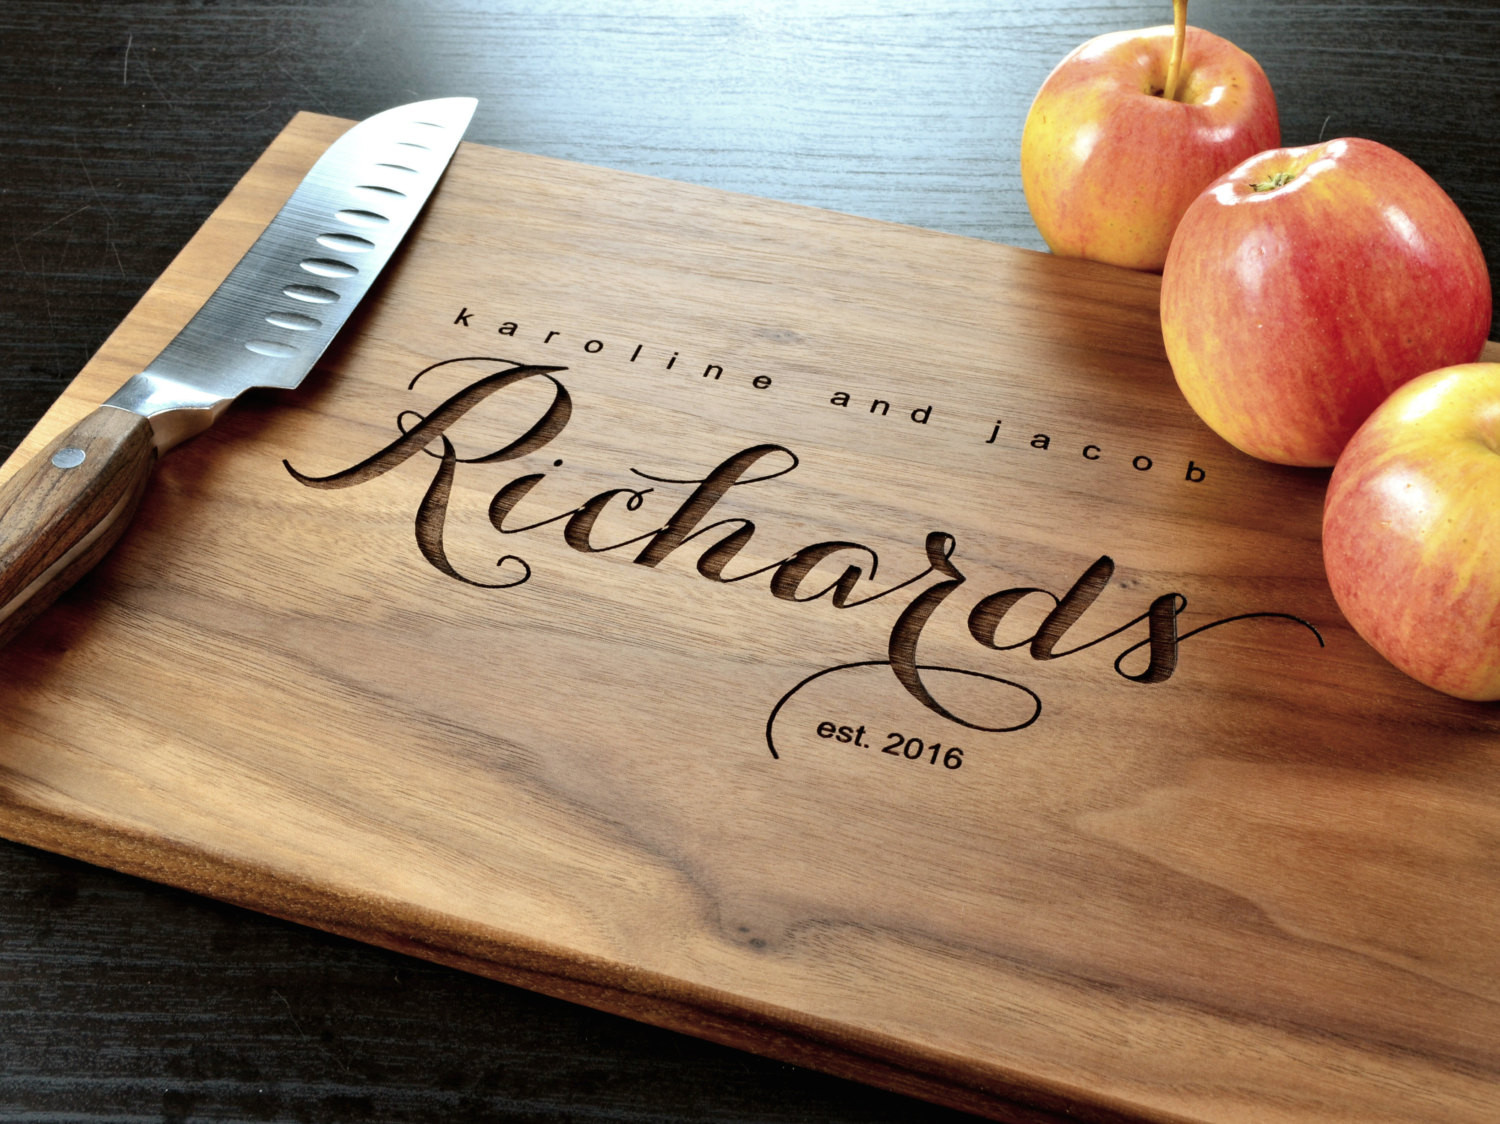 Best ideas about Custom Gift Ideas . Save or Pin Personalized Cutting Board Engraved Custom Cutting Board Now.